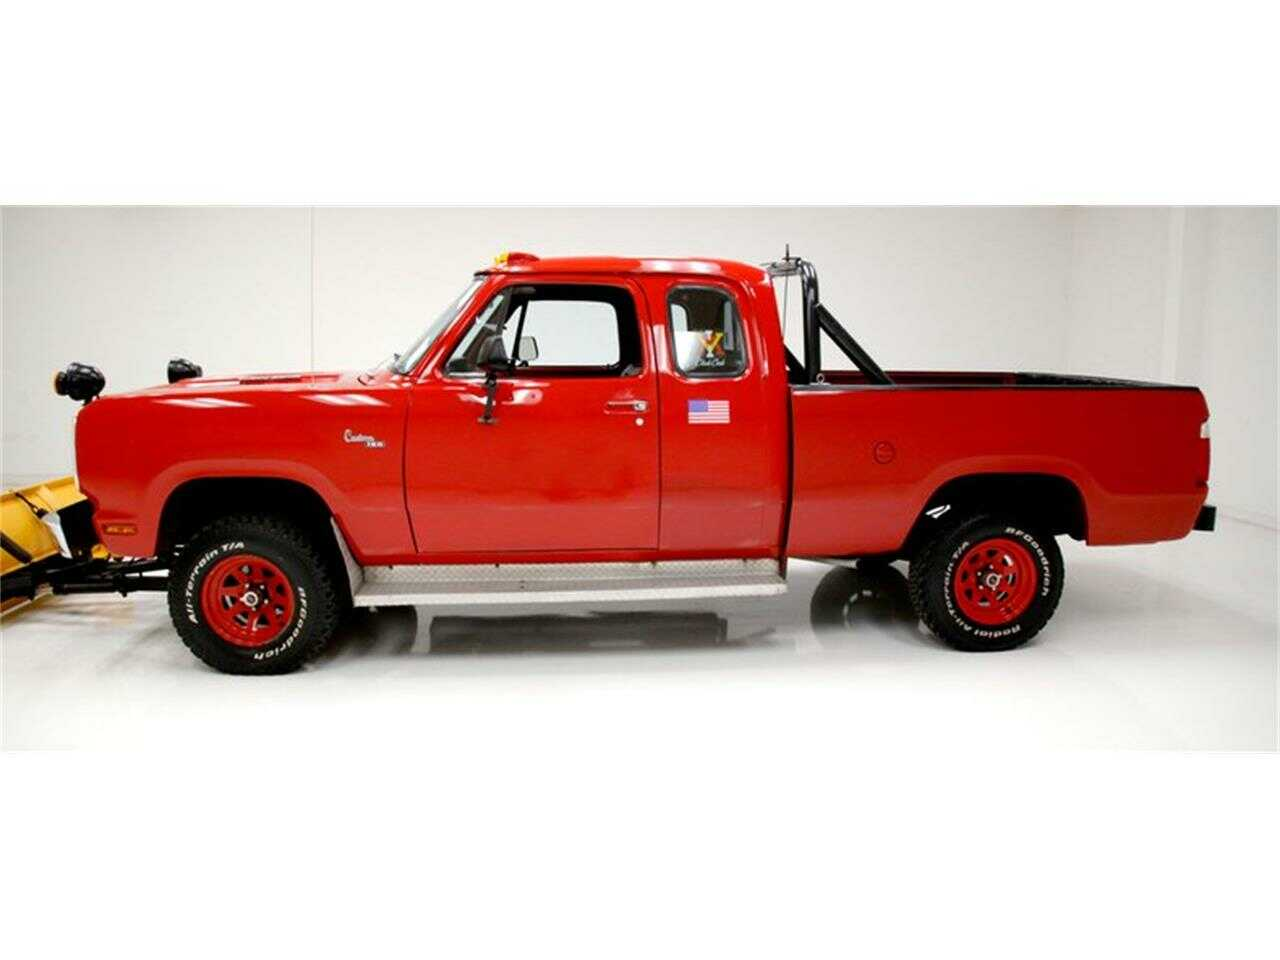 1978 Dodge Power Wagon For Sale In Morgantown Pa W17be8s295462